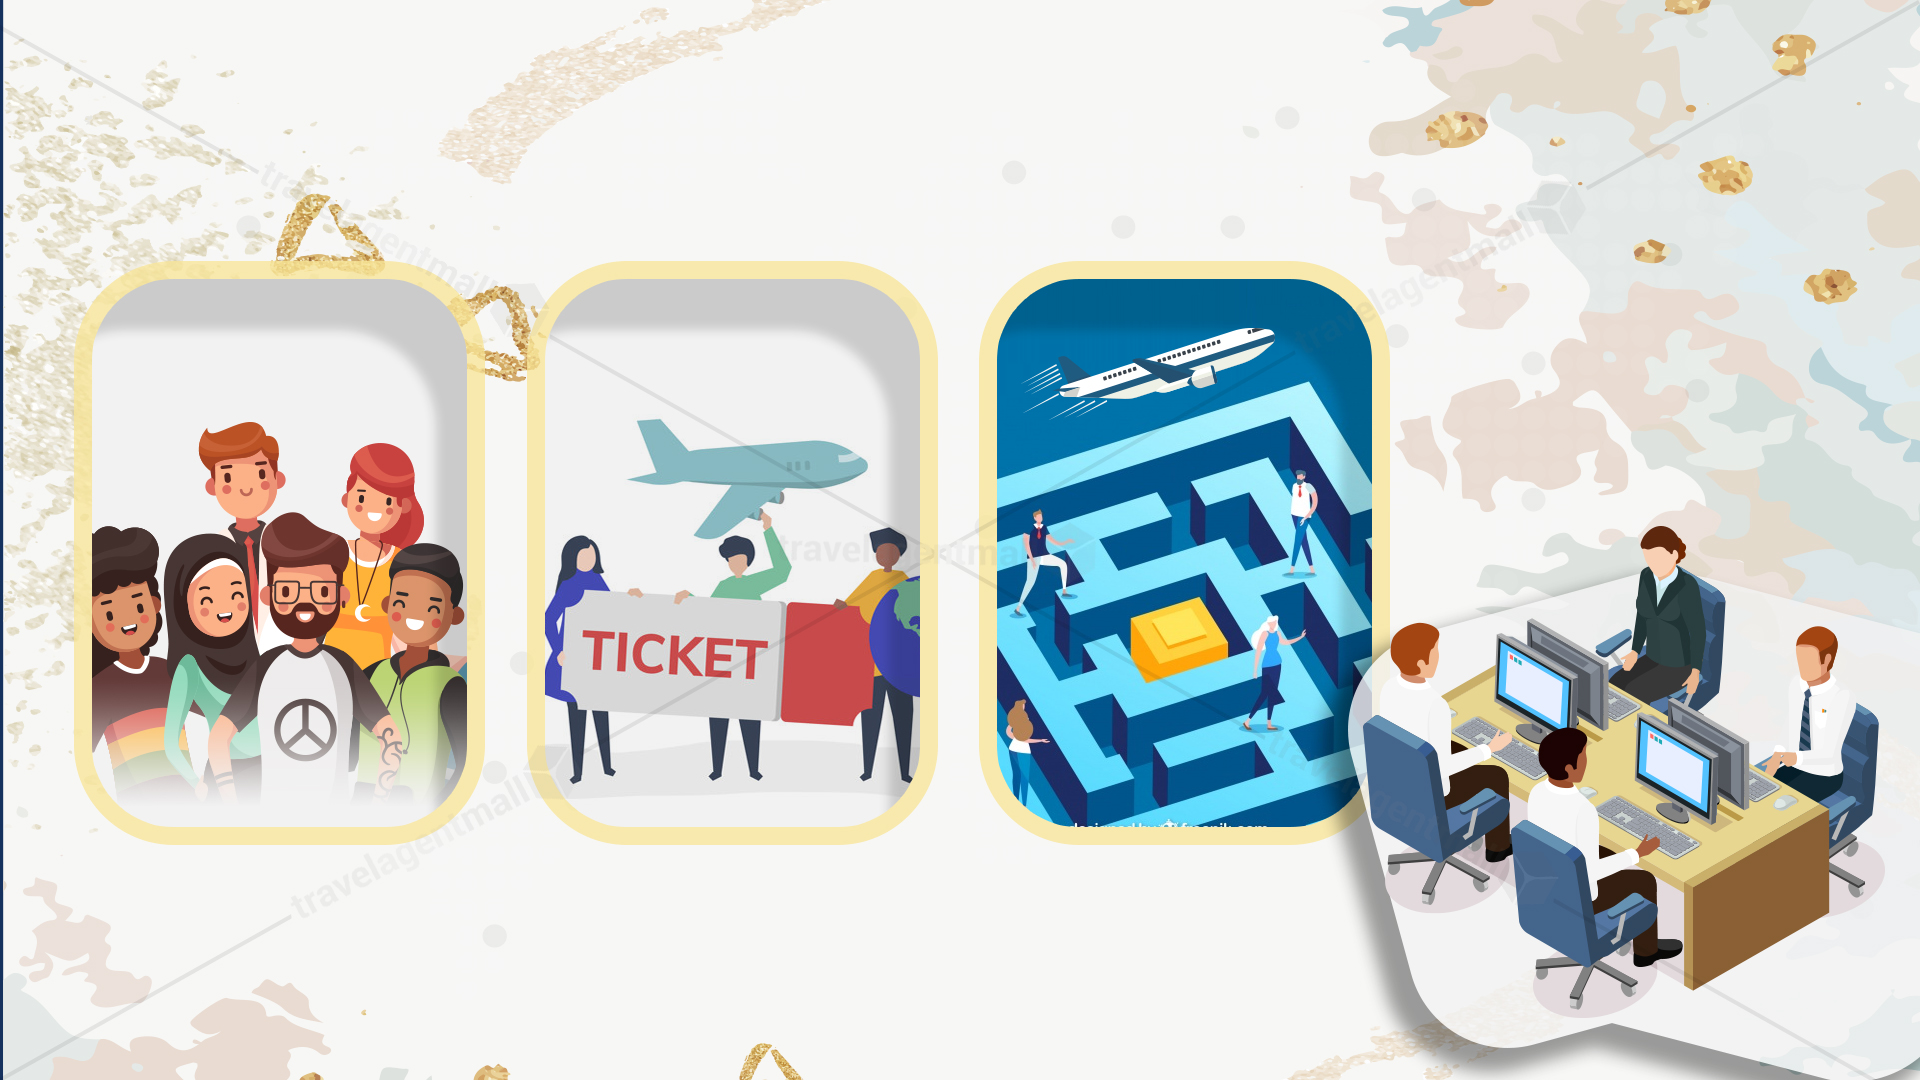 Group fares, Group flight booking: Challenges & Solutions